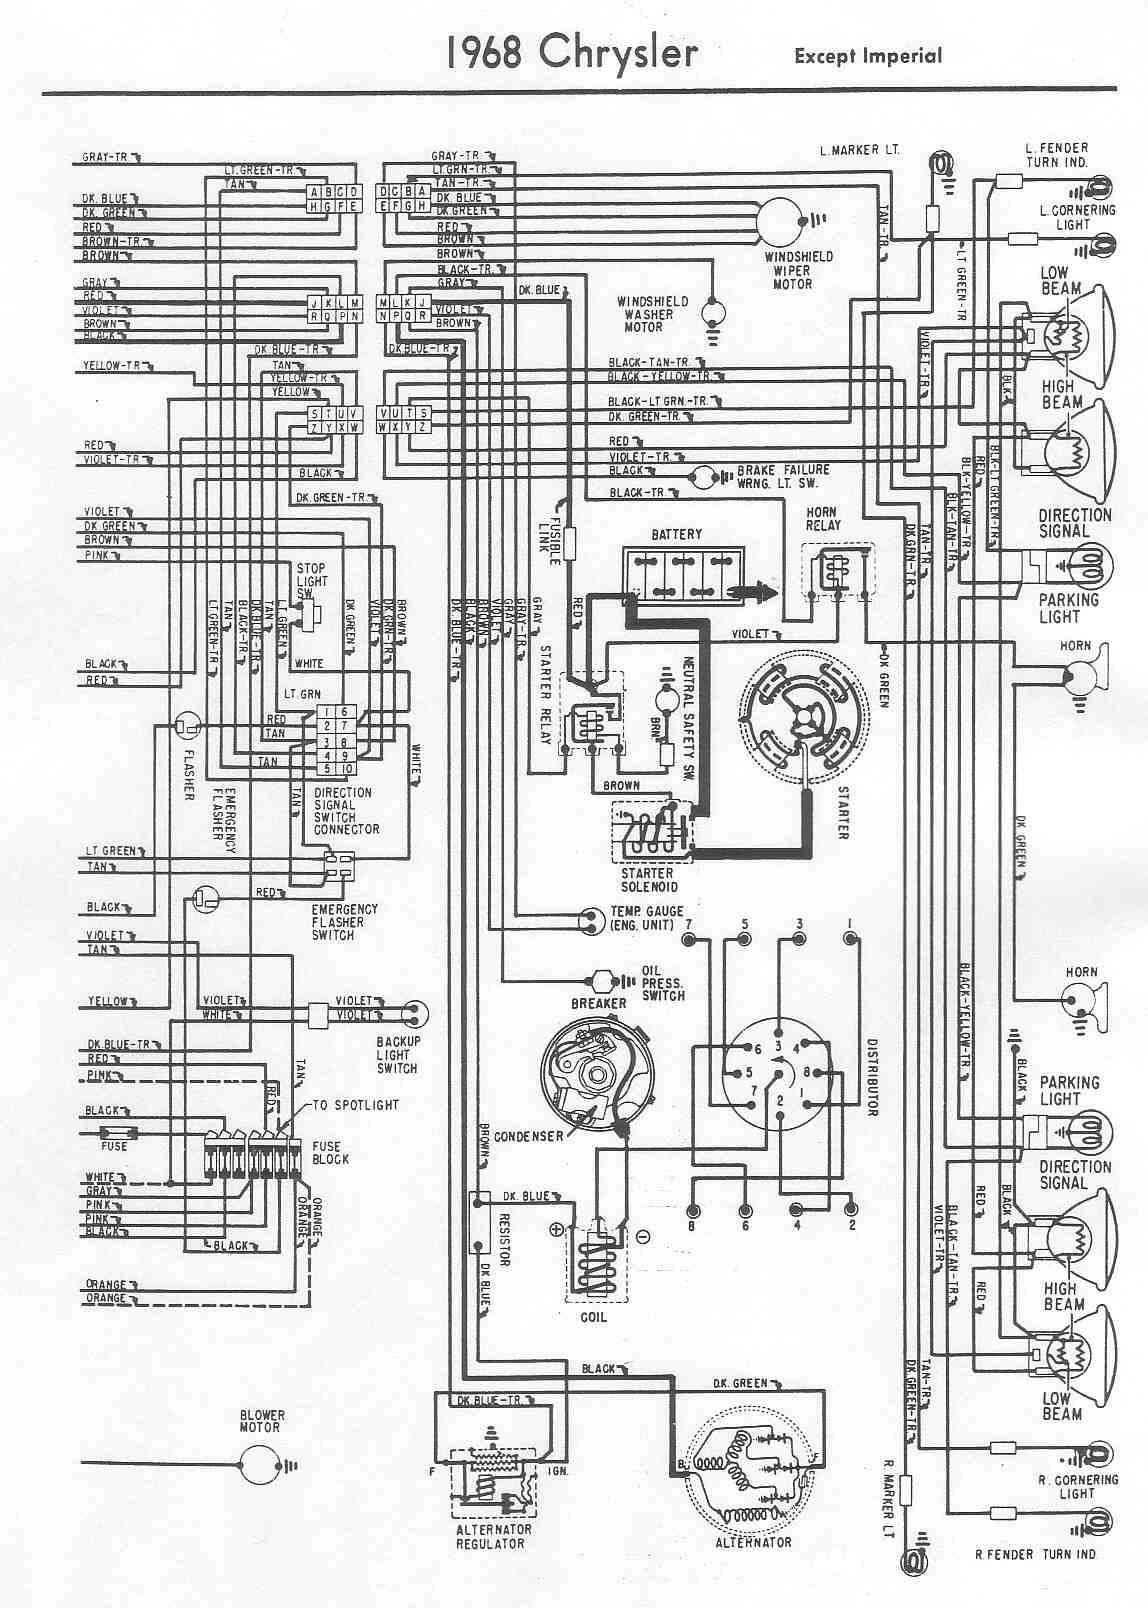 chrysler new yorker wiring diagram example electrical wiring diagram u2022 rh huntervalleyhotels co 1992 Chrysler New Yorker 1989 Chrysler New Yorker